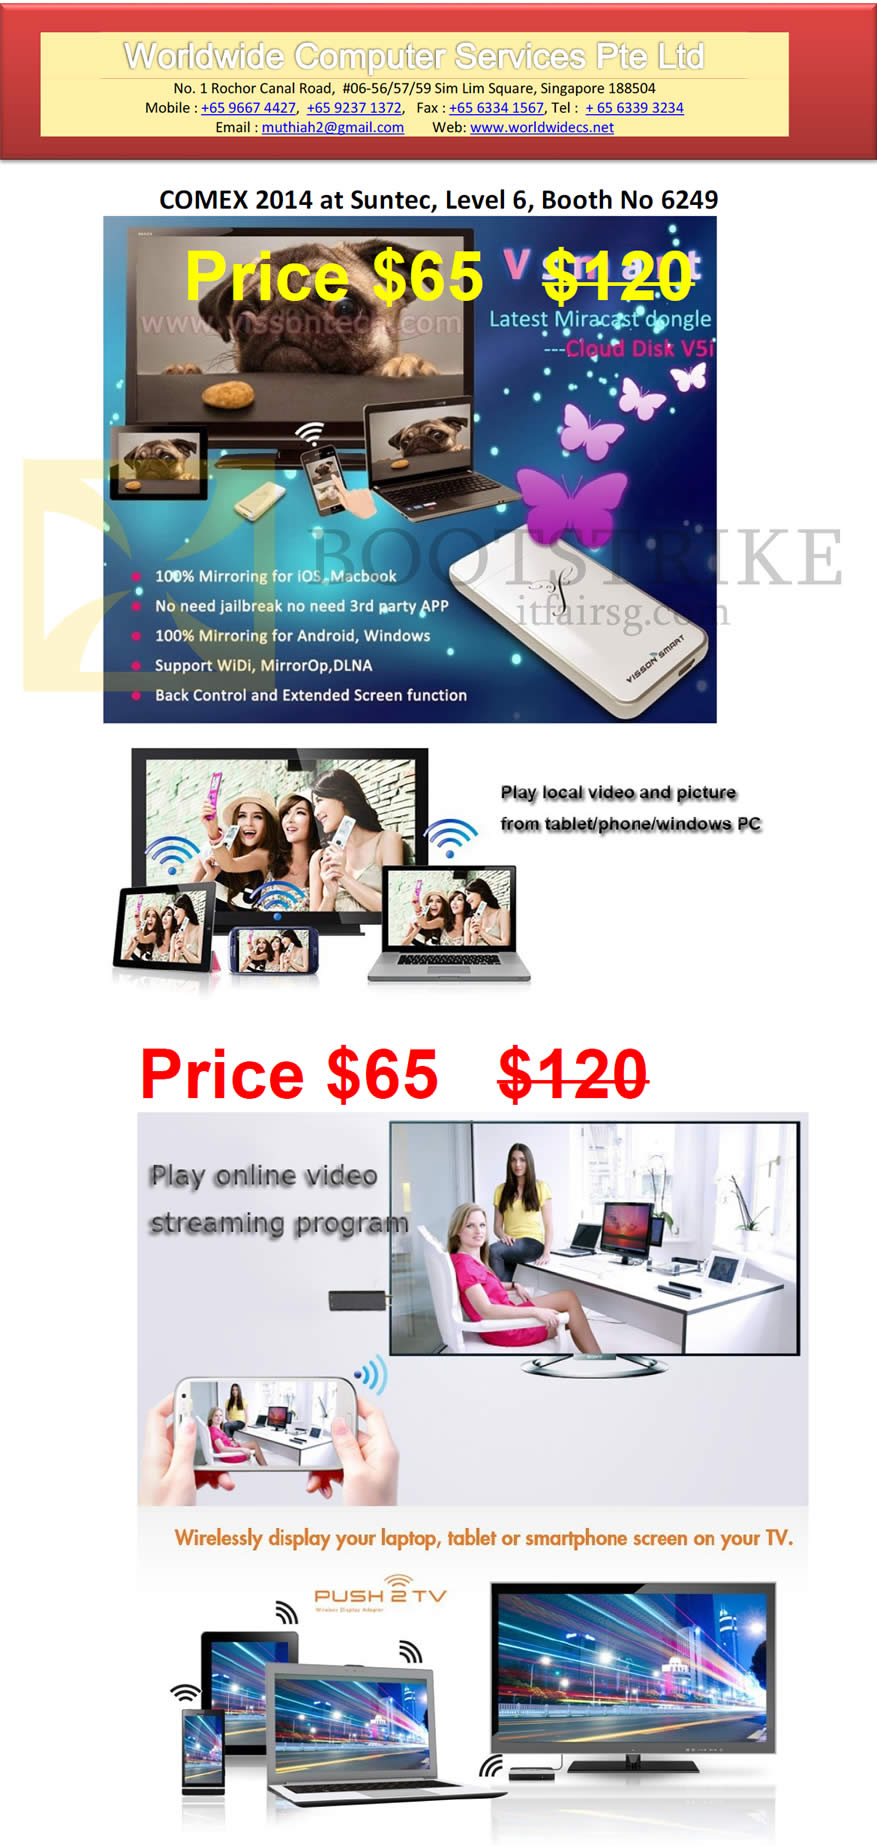 COMEX 2014 price list image brochure of Worldwide Computer Services Cloud Disk V5 Dongle